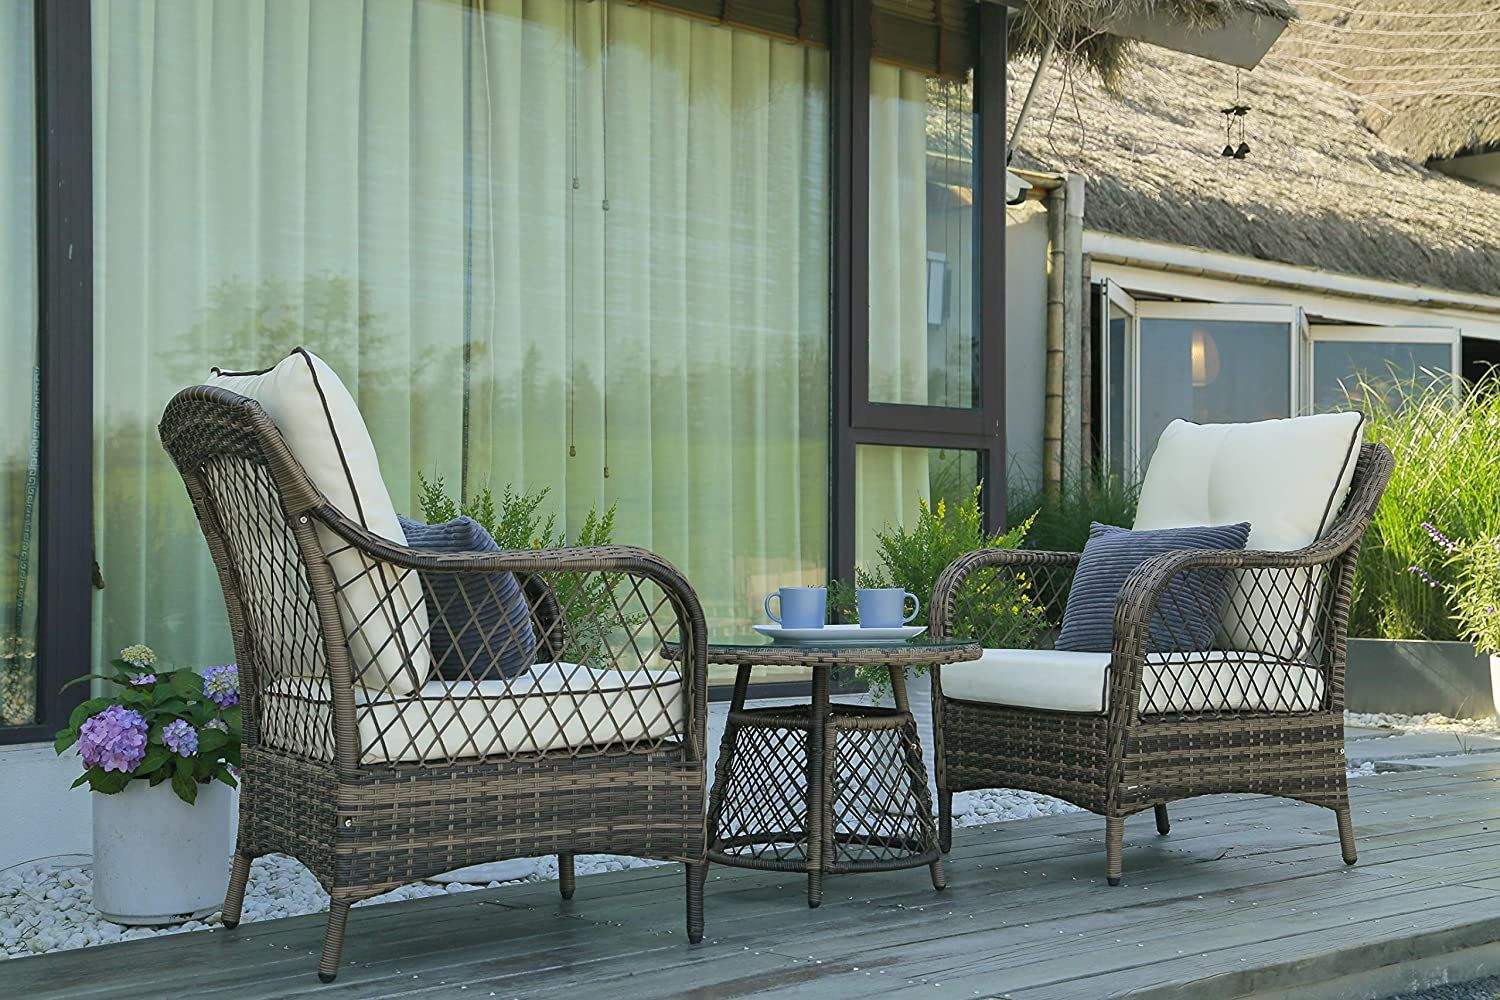 Beige Conversation Chairs Bistro Sets W Table In 2021 Outdoor Wicker Chairs Outdoor Patio Furniture Wicker Patio Set